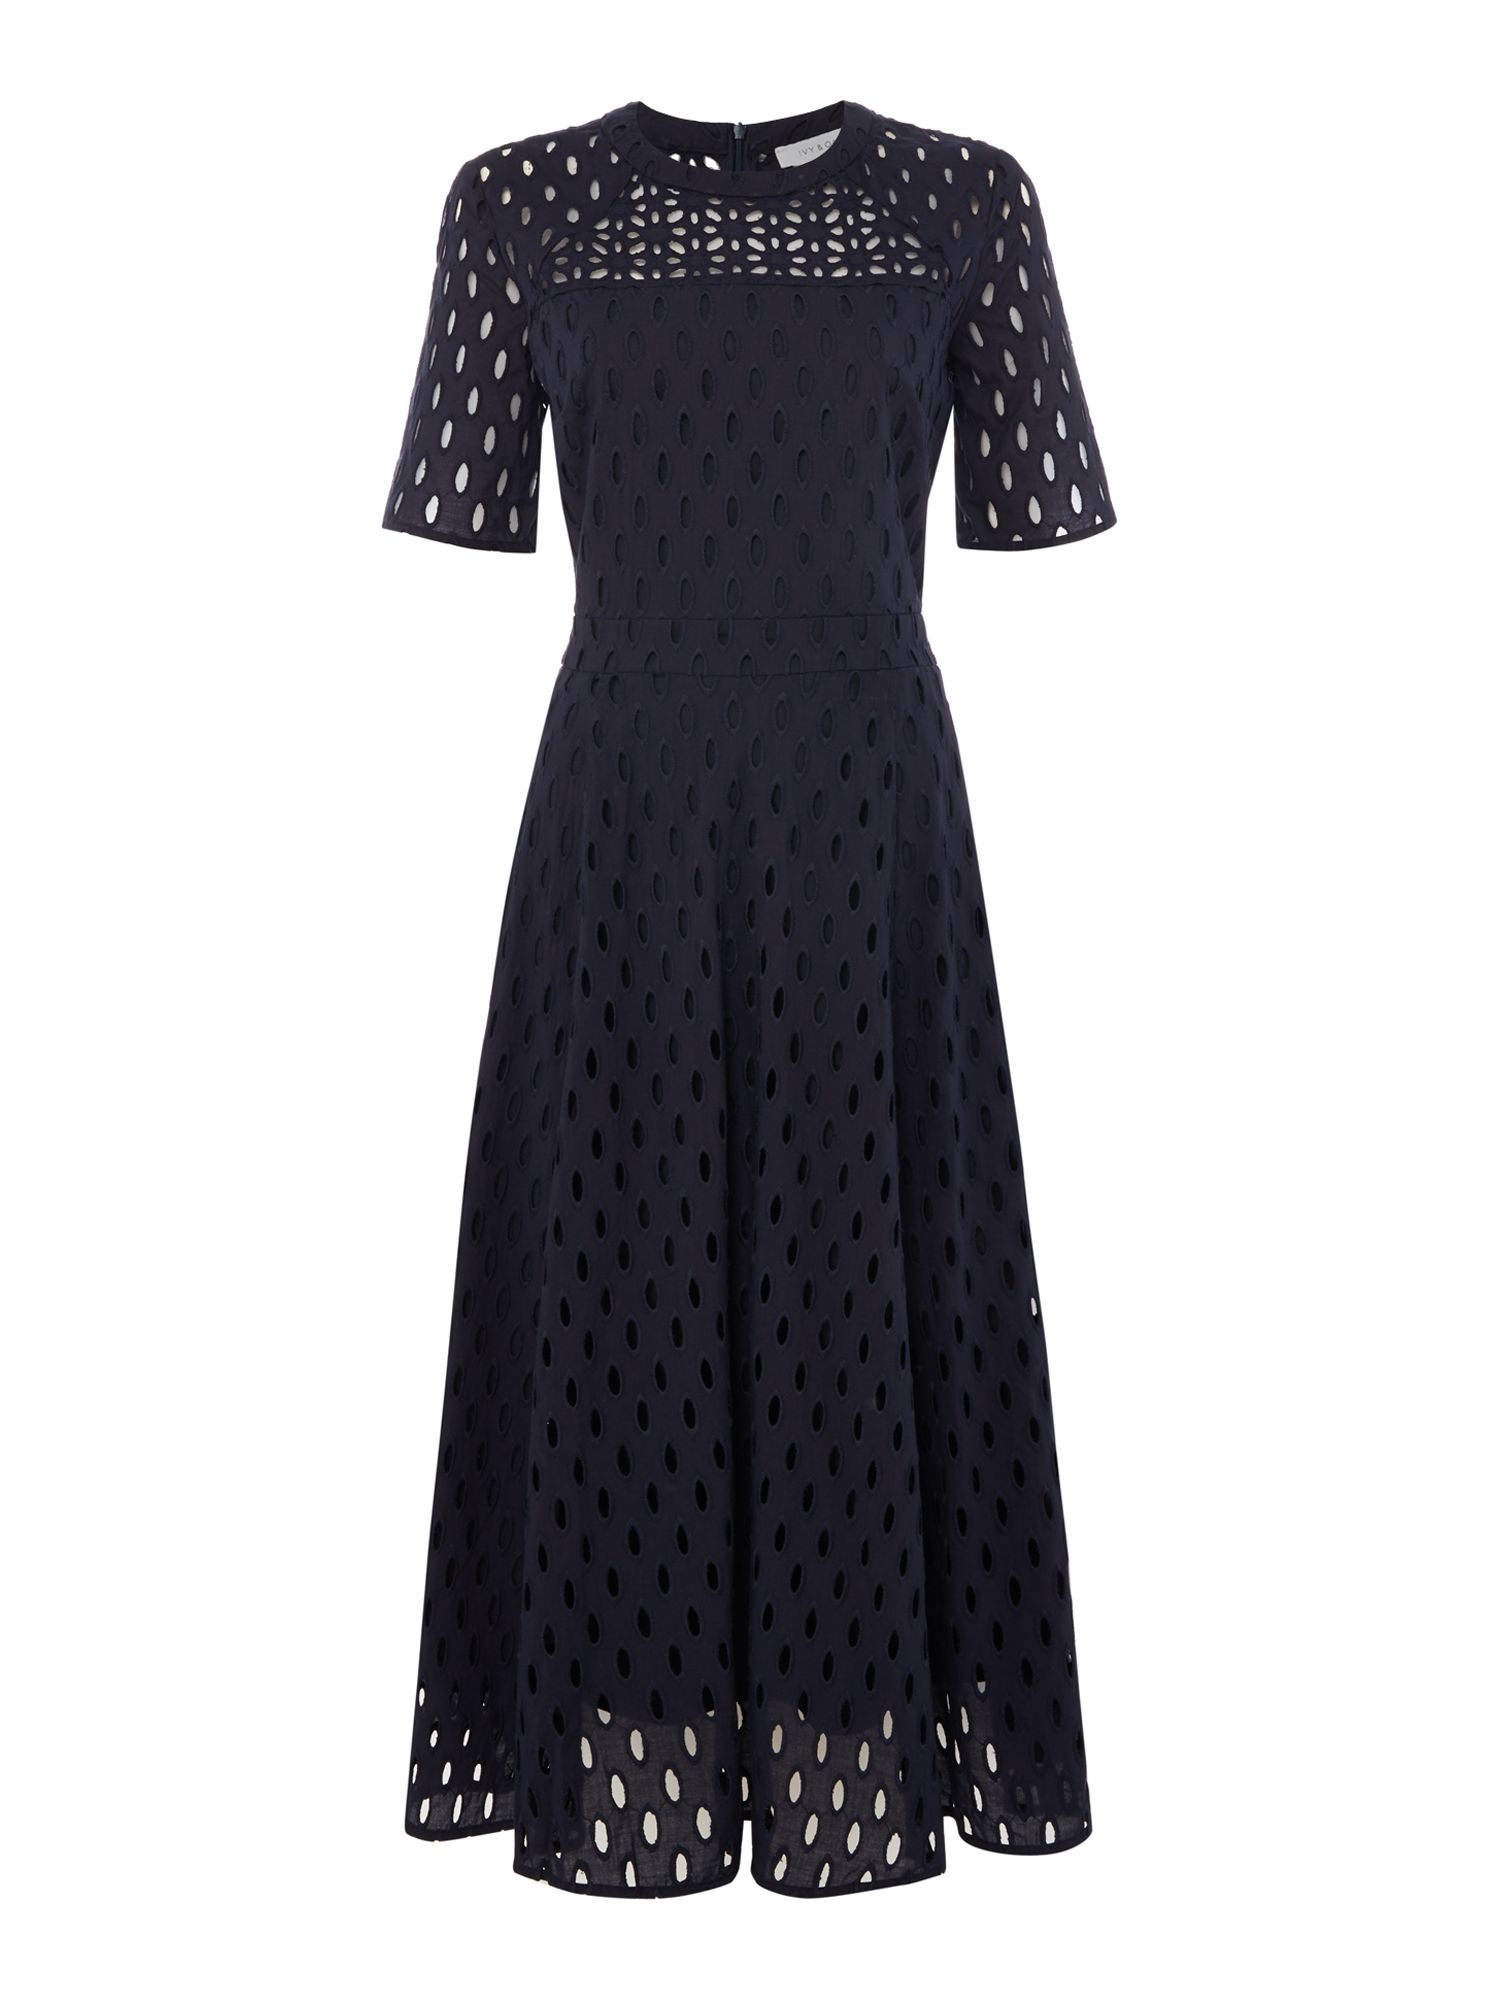 IVY & OAK Ivy & Oak Brodery short sleeve fit and flare dress, Midnight Blue